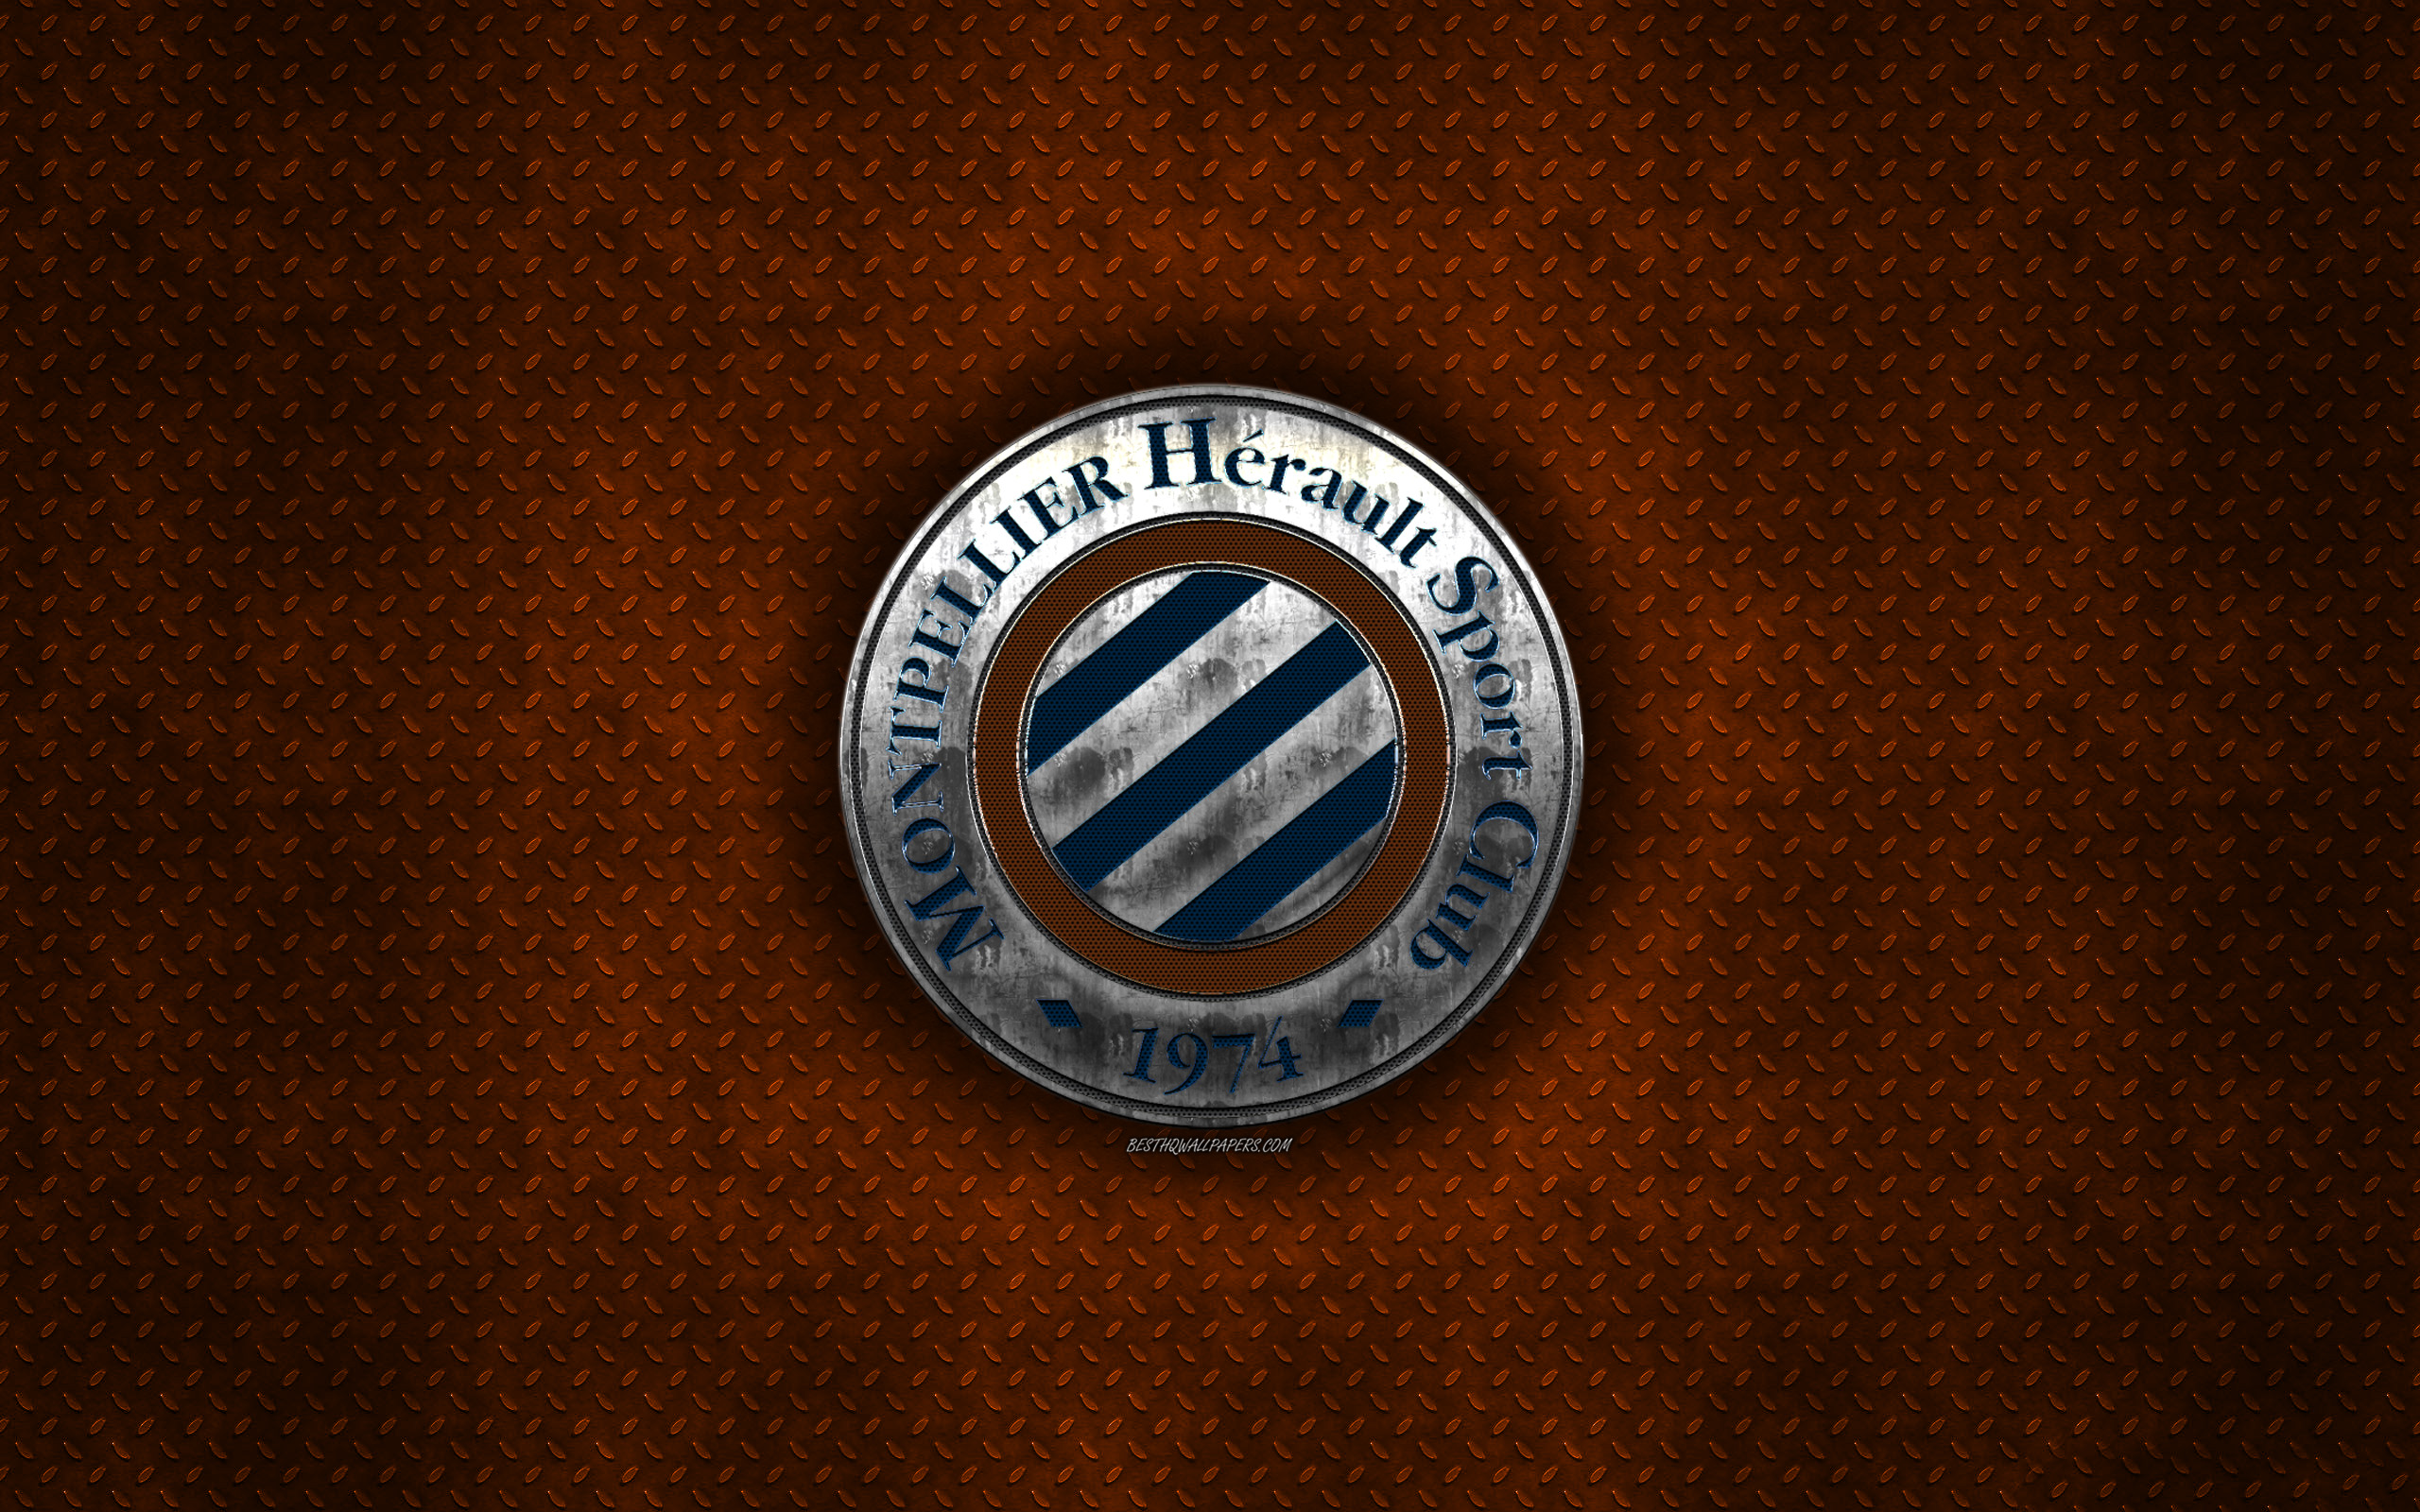 Download wallpapers HSC Montpellier, French football club, orange